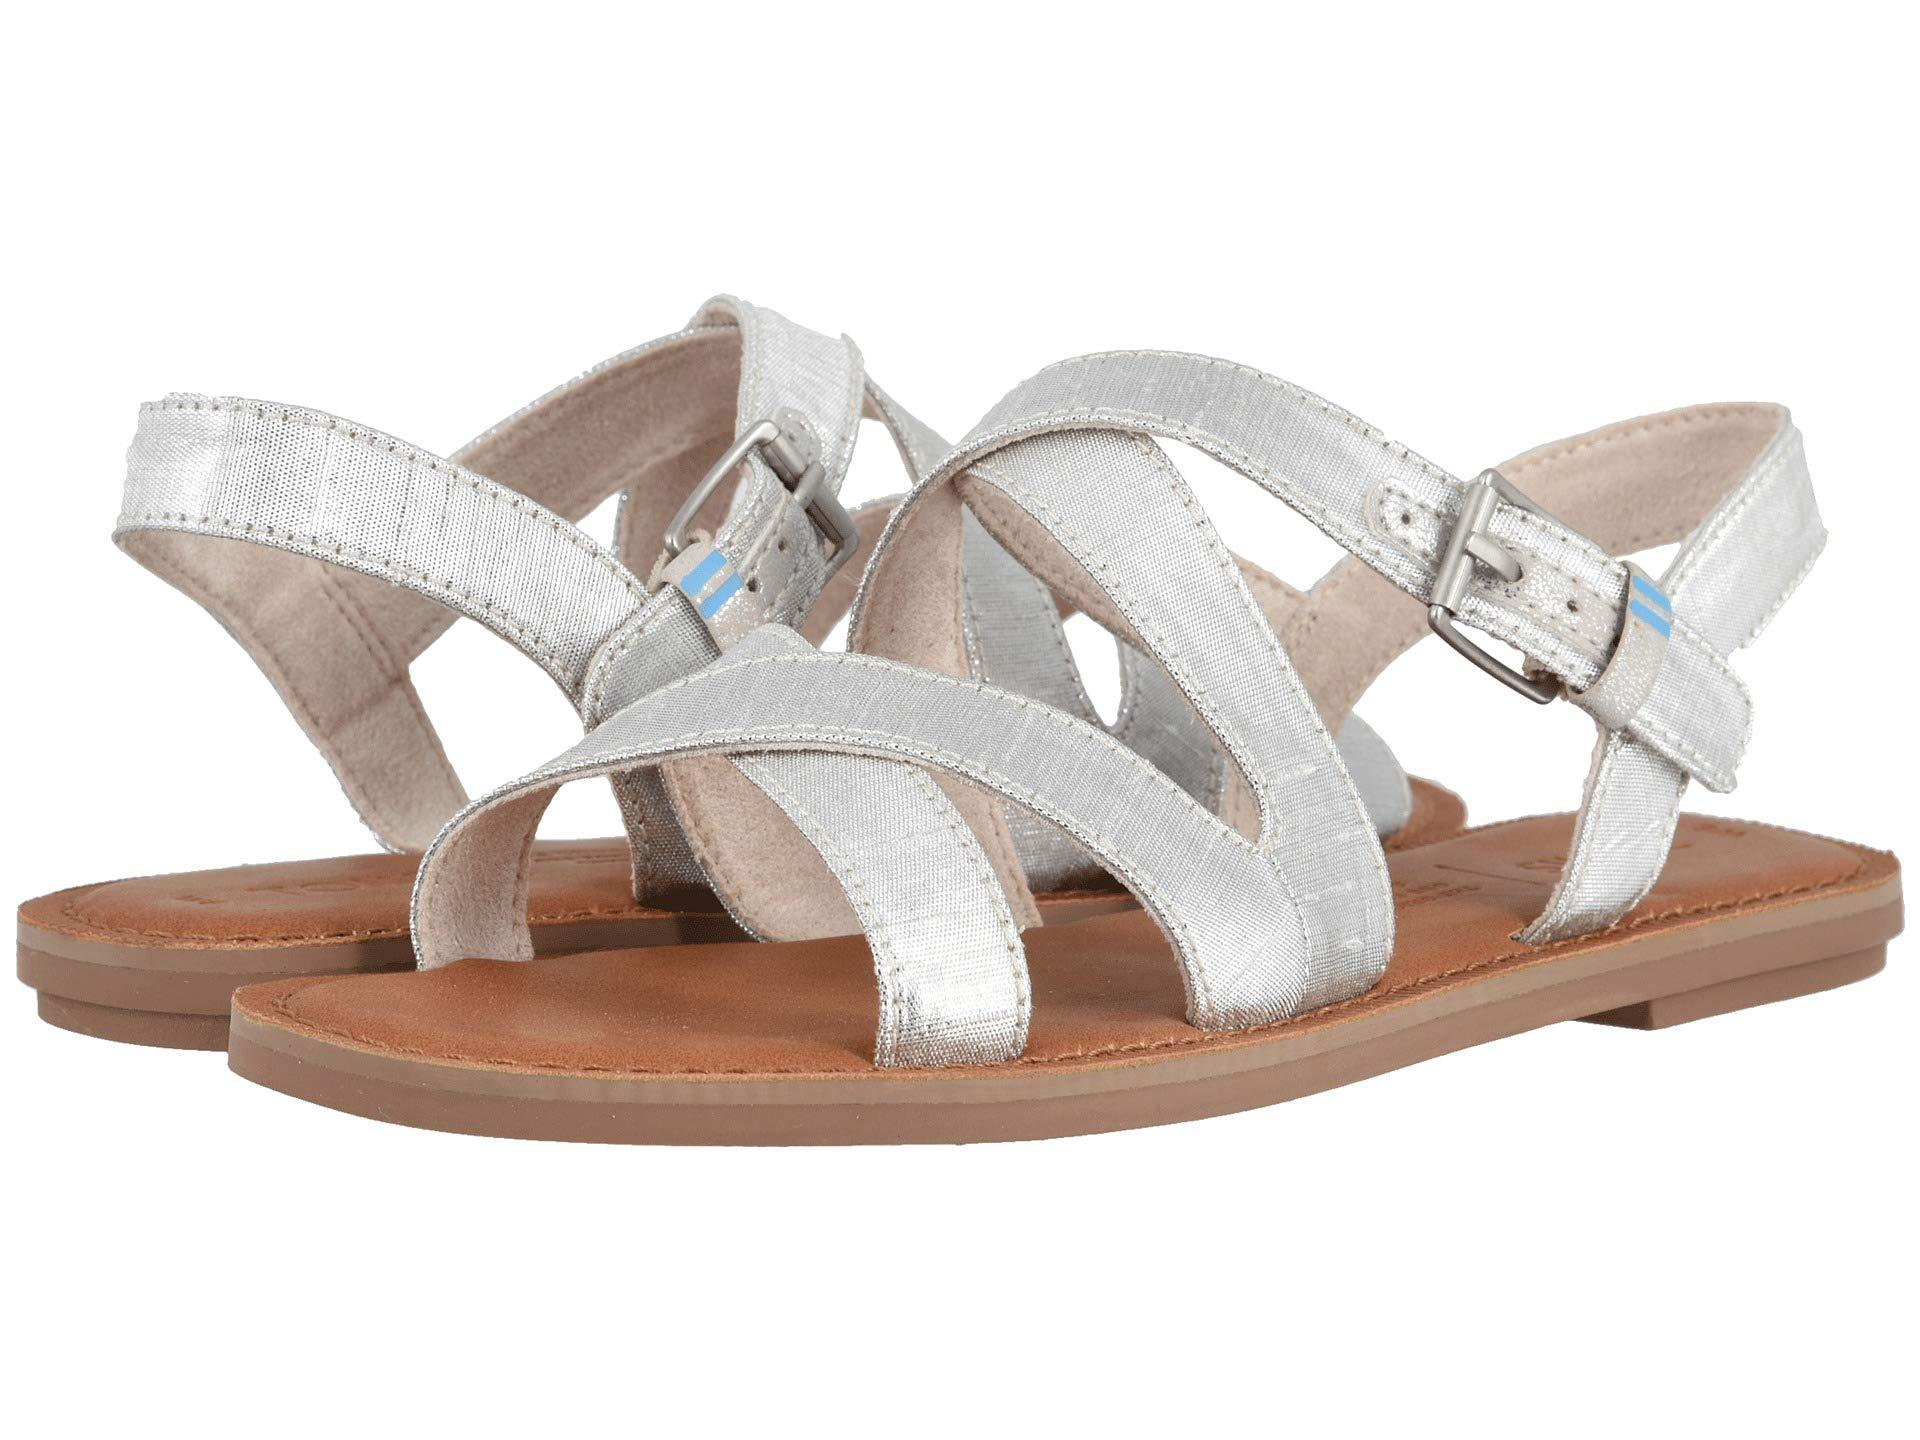 f01c2480051 TOMS Sicily Sandal in Metallic - Save 20% - Lyst